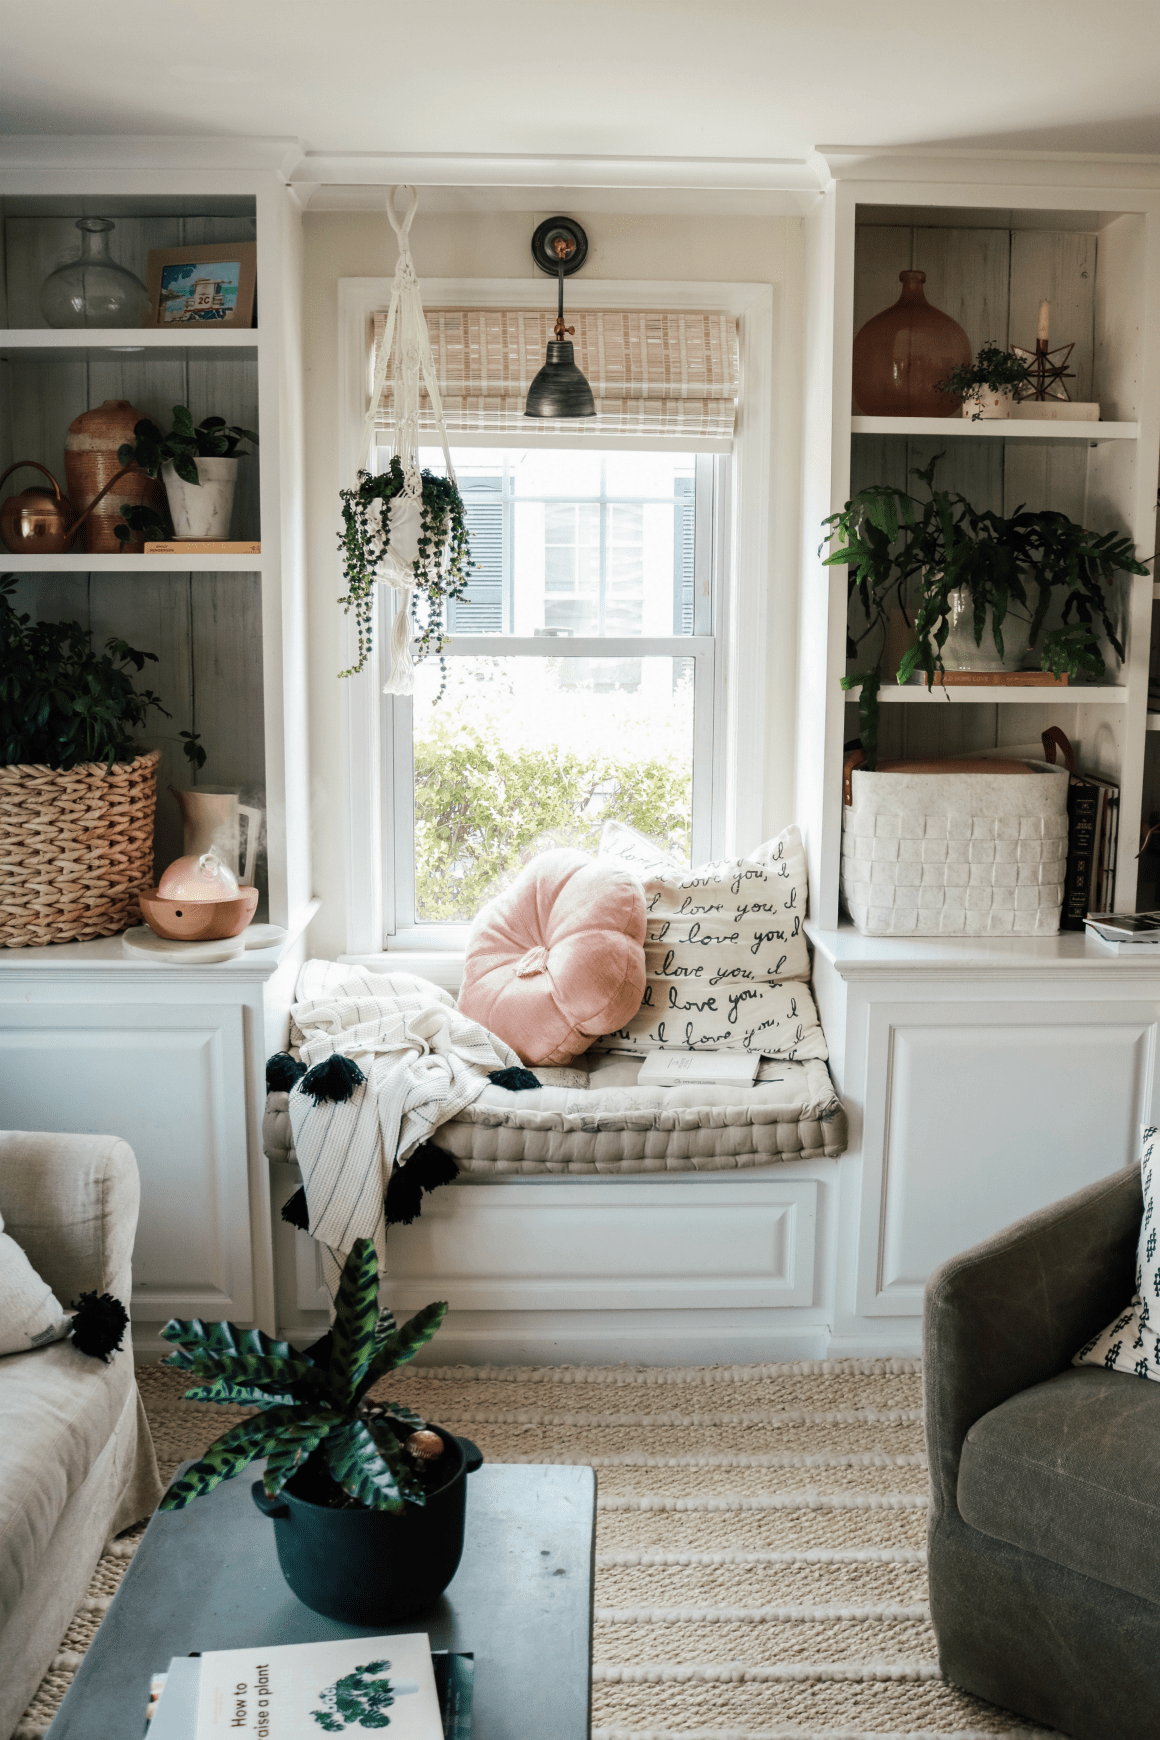 8 Things I Bought From Urban Outfitters Homedecor - Home Accessories